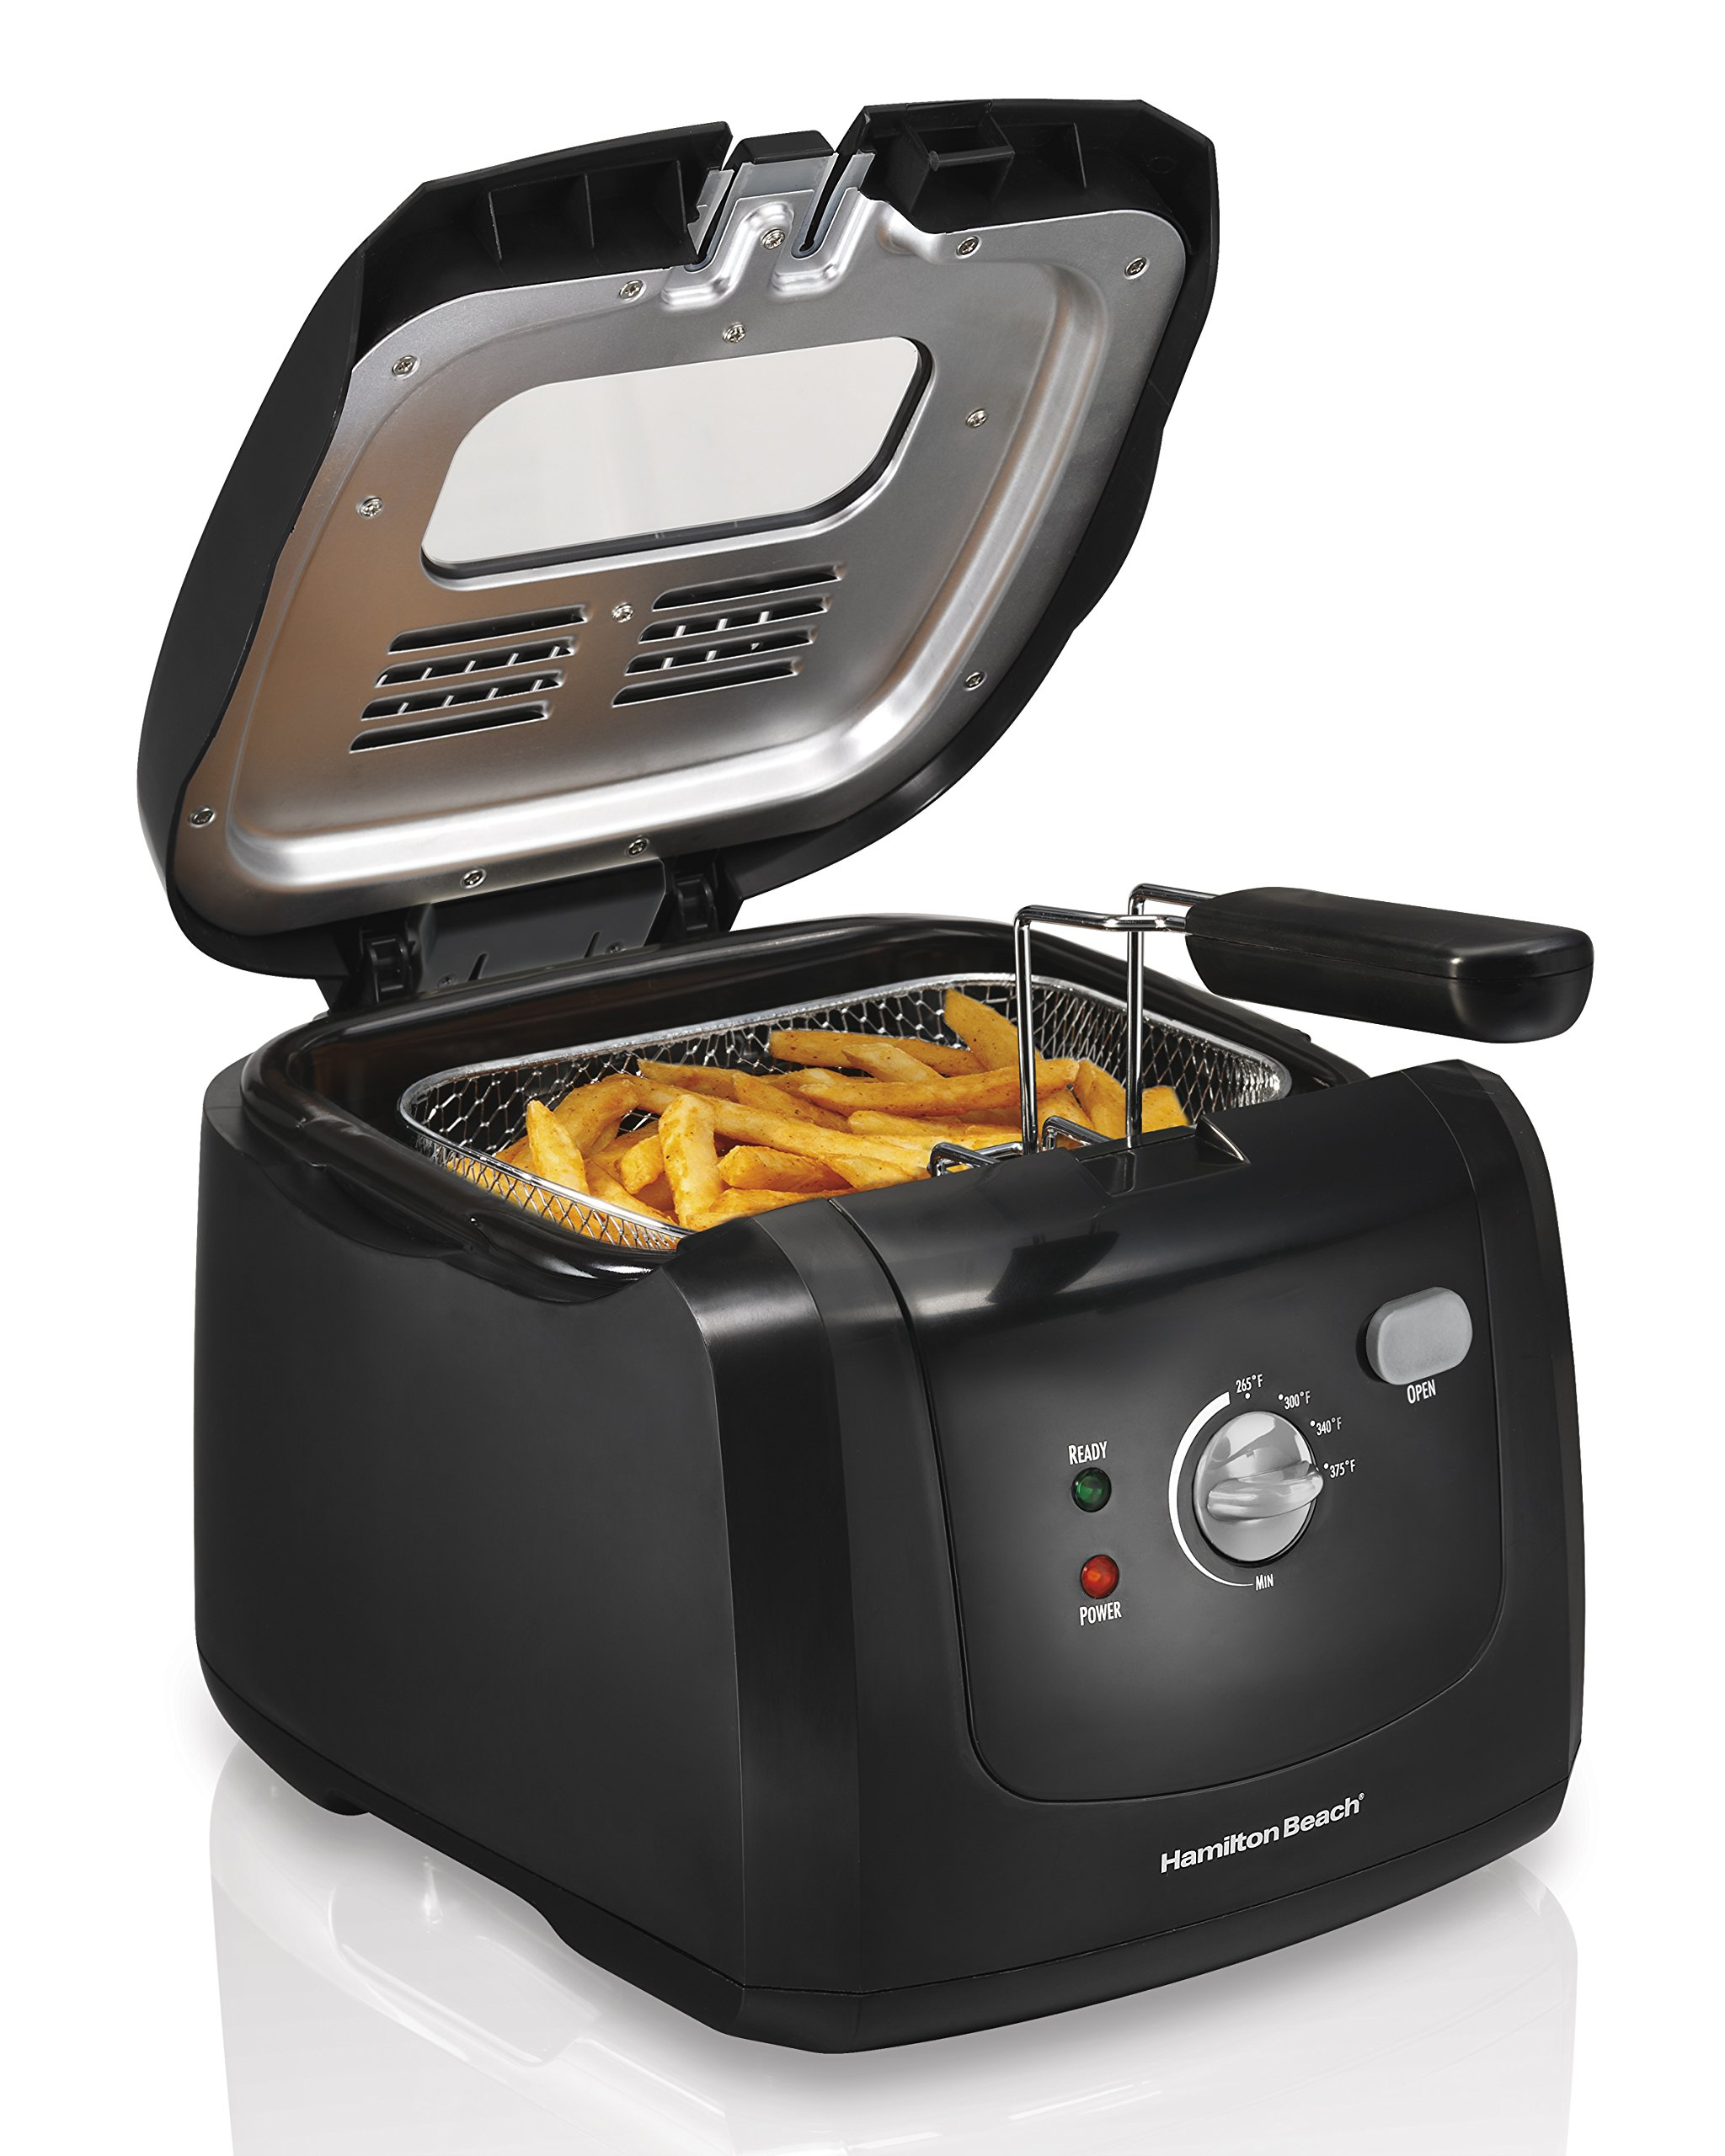 Hamilton Beach Cool-Touch Deep Fryer, 8 Cups / 2 Liters Oil Capacity, Lid with View Window, Basket with Hooks, 1500 Watts, Electric, Black (35021) by Hamilton Beach